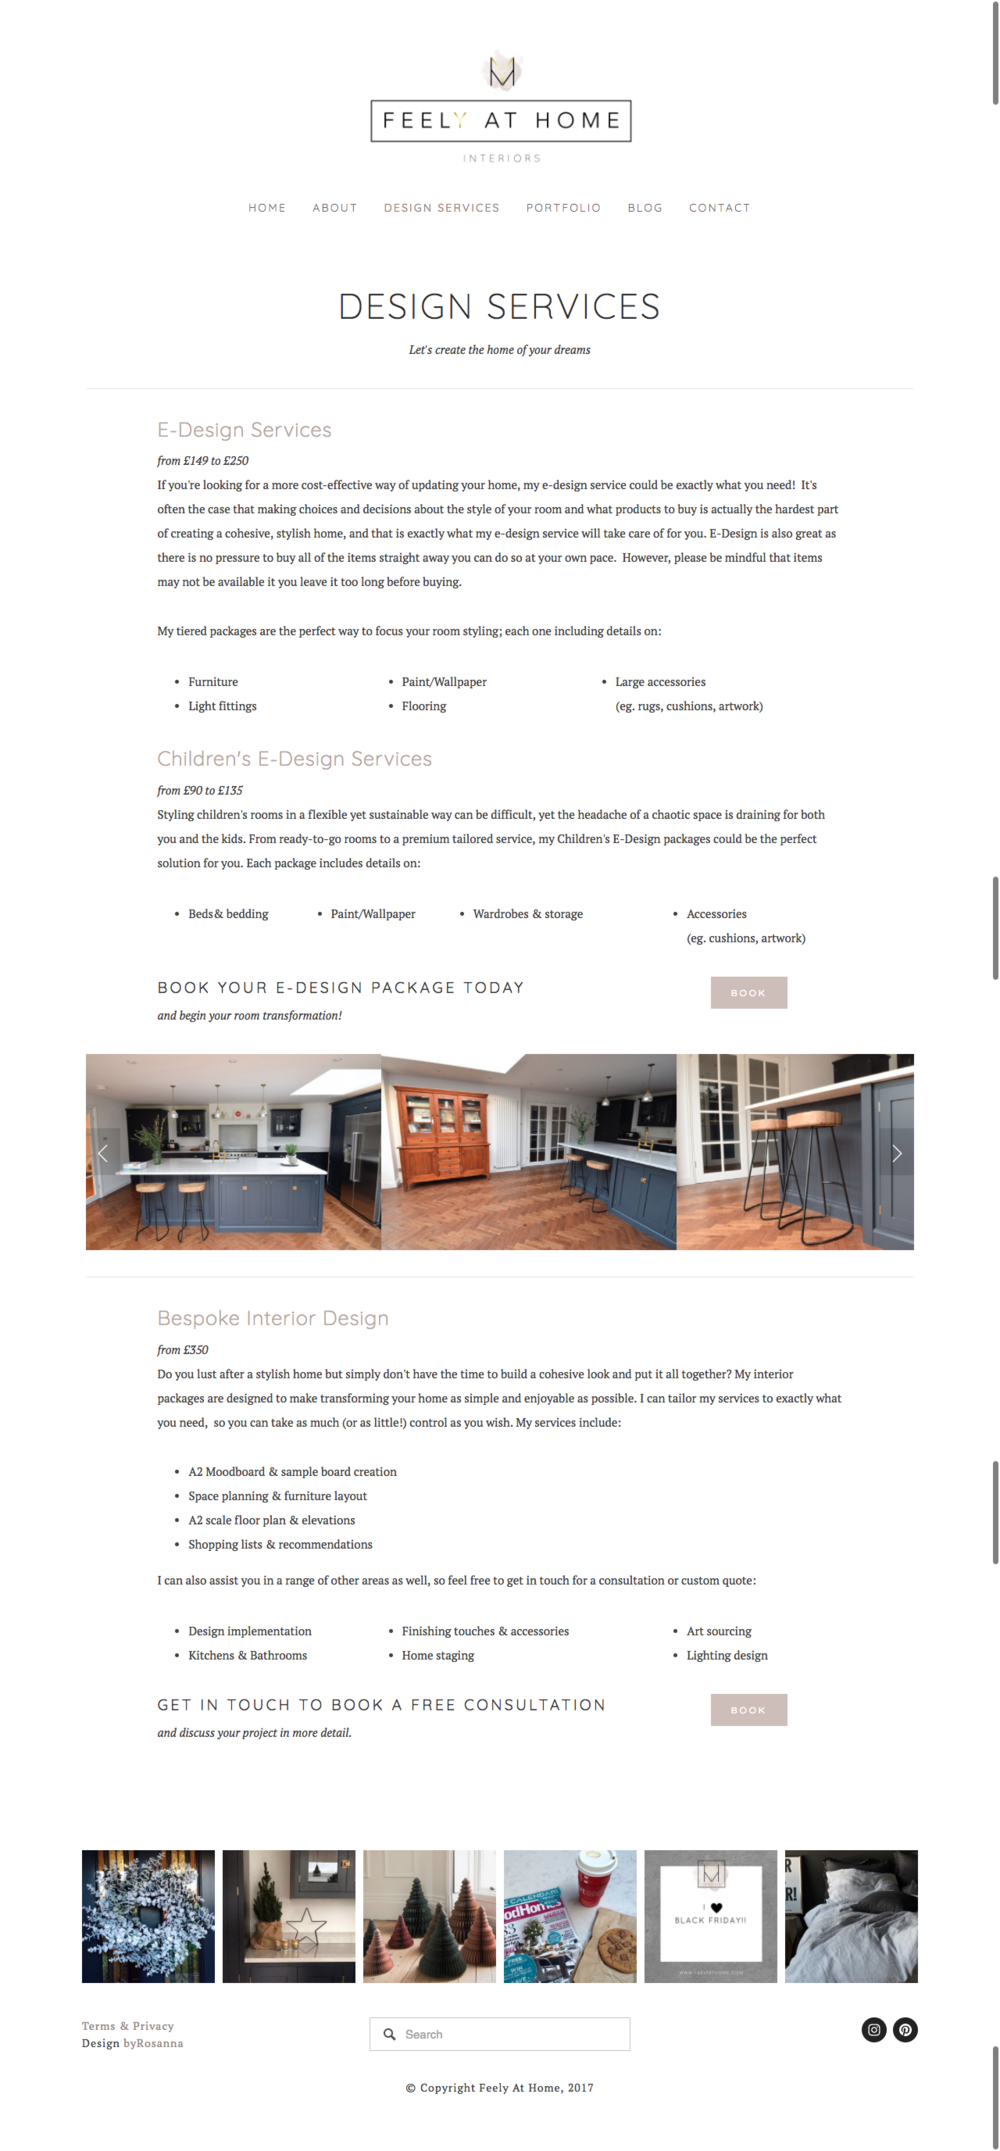 screenshot-www.feelyathome.com-2018-01-02-19-47-05-373.png